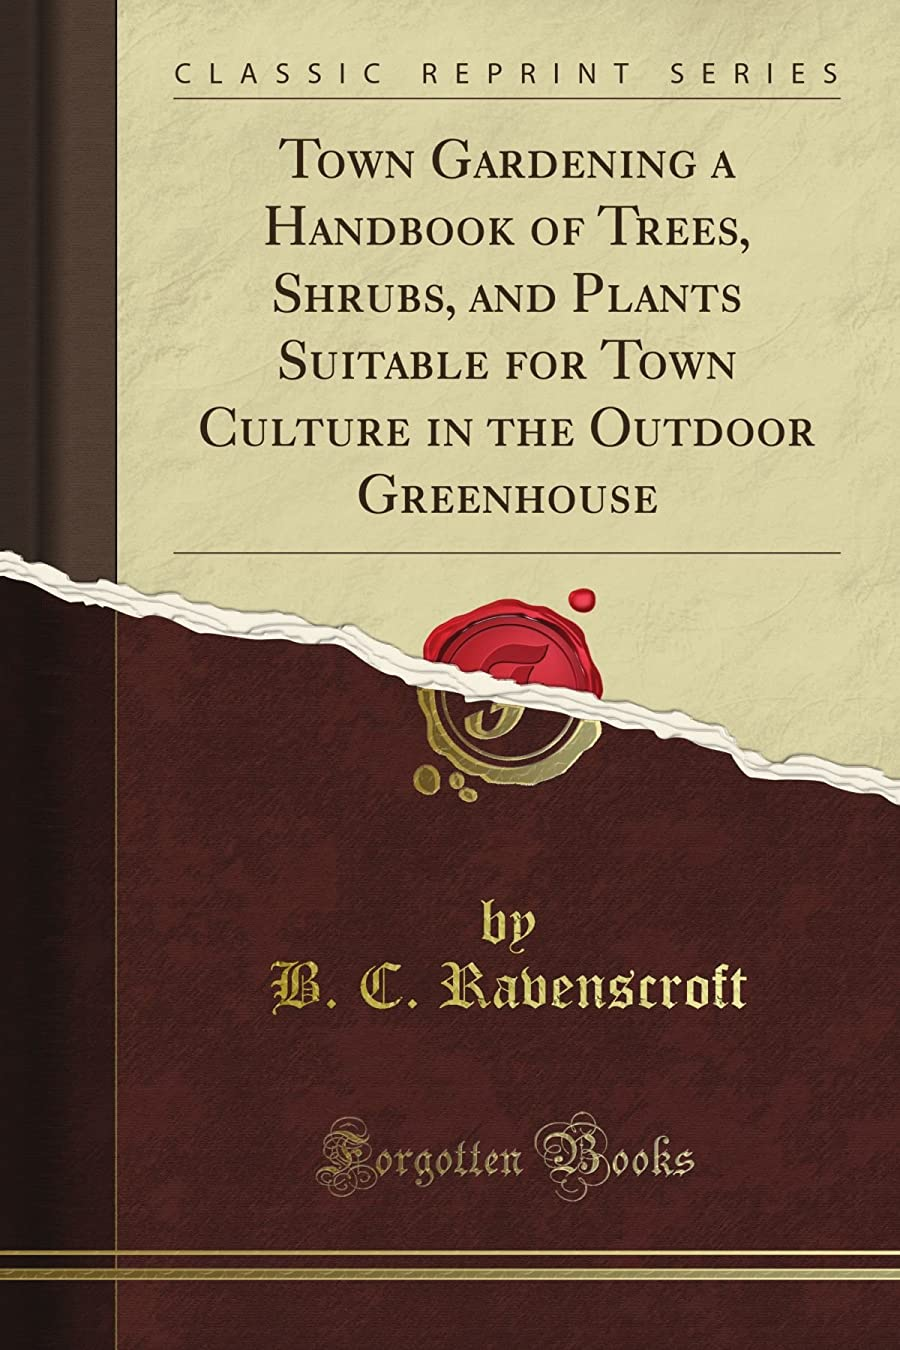 ミネラルお手伝いさんブルジョンTown Gardening a Handbook of Trees, Shrubs, and Plants Suitable for Town Culture in the Outdoor Greenhouse (Classic Reprint)